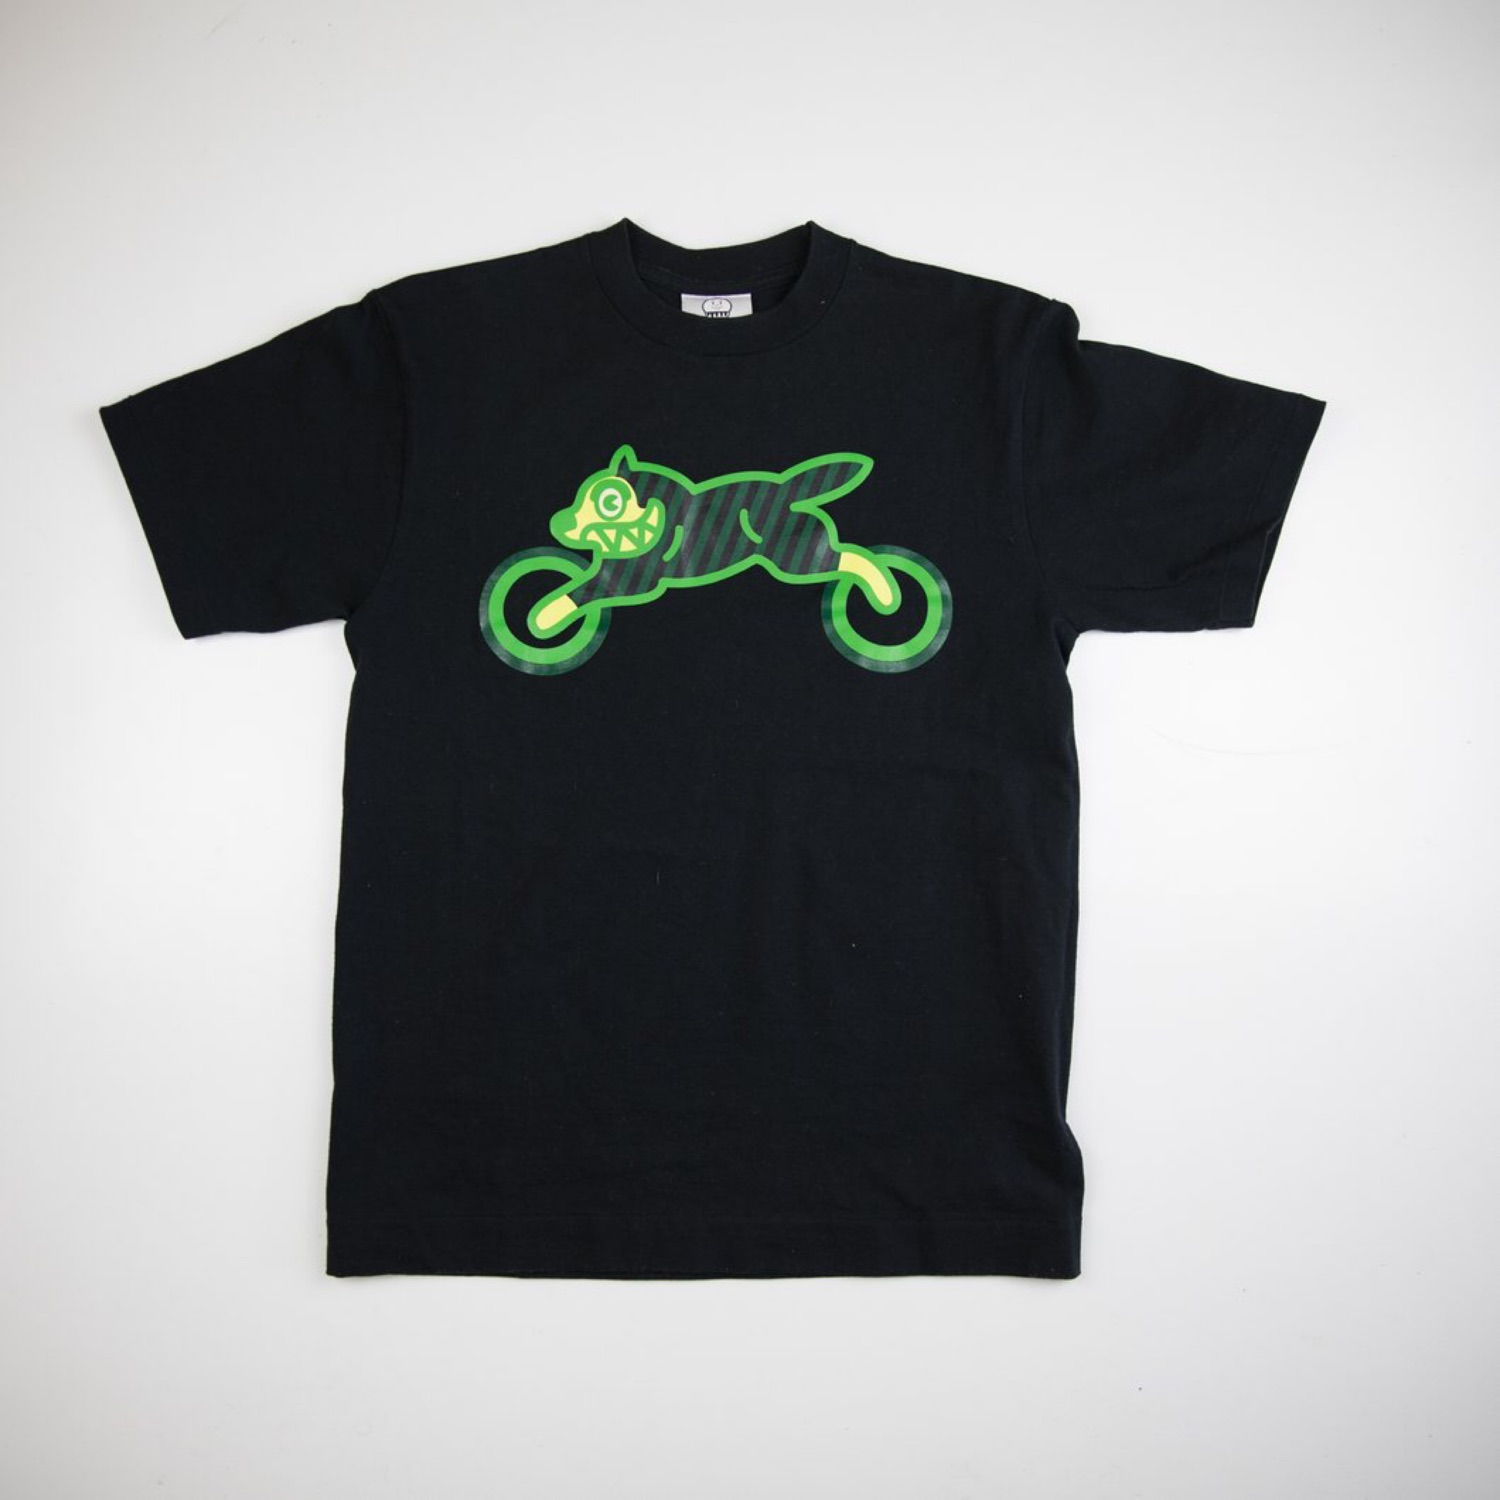 43f591b1 Bbc Running Dog Motorbike Tee Black Green (Used)